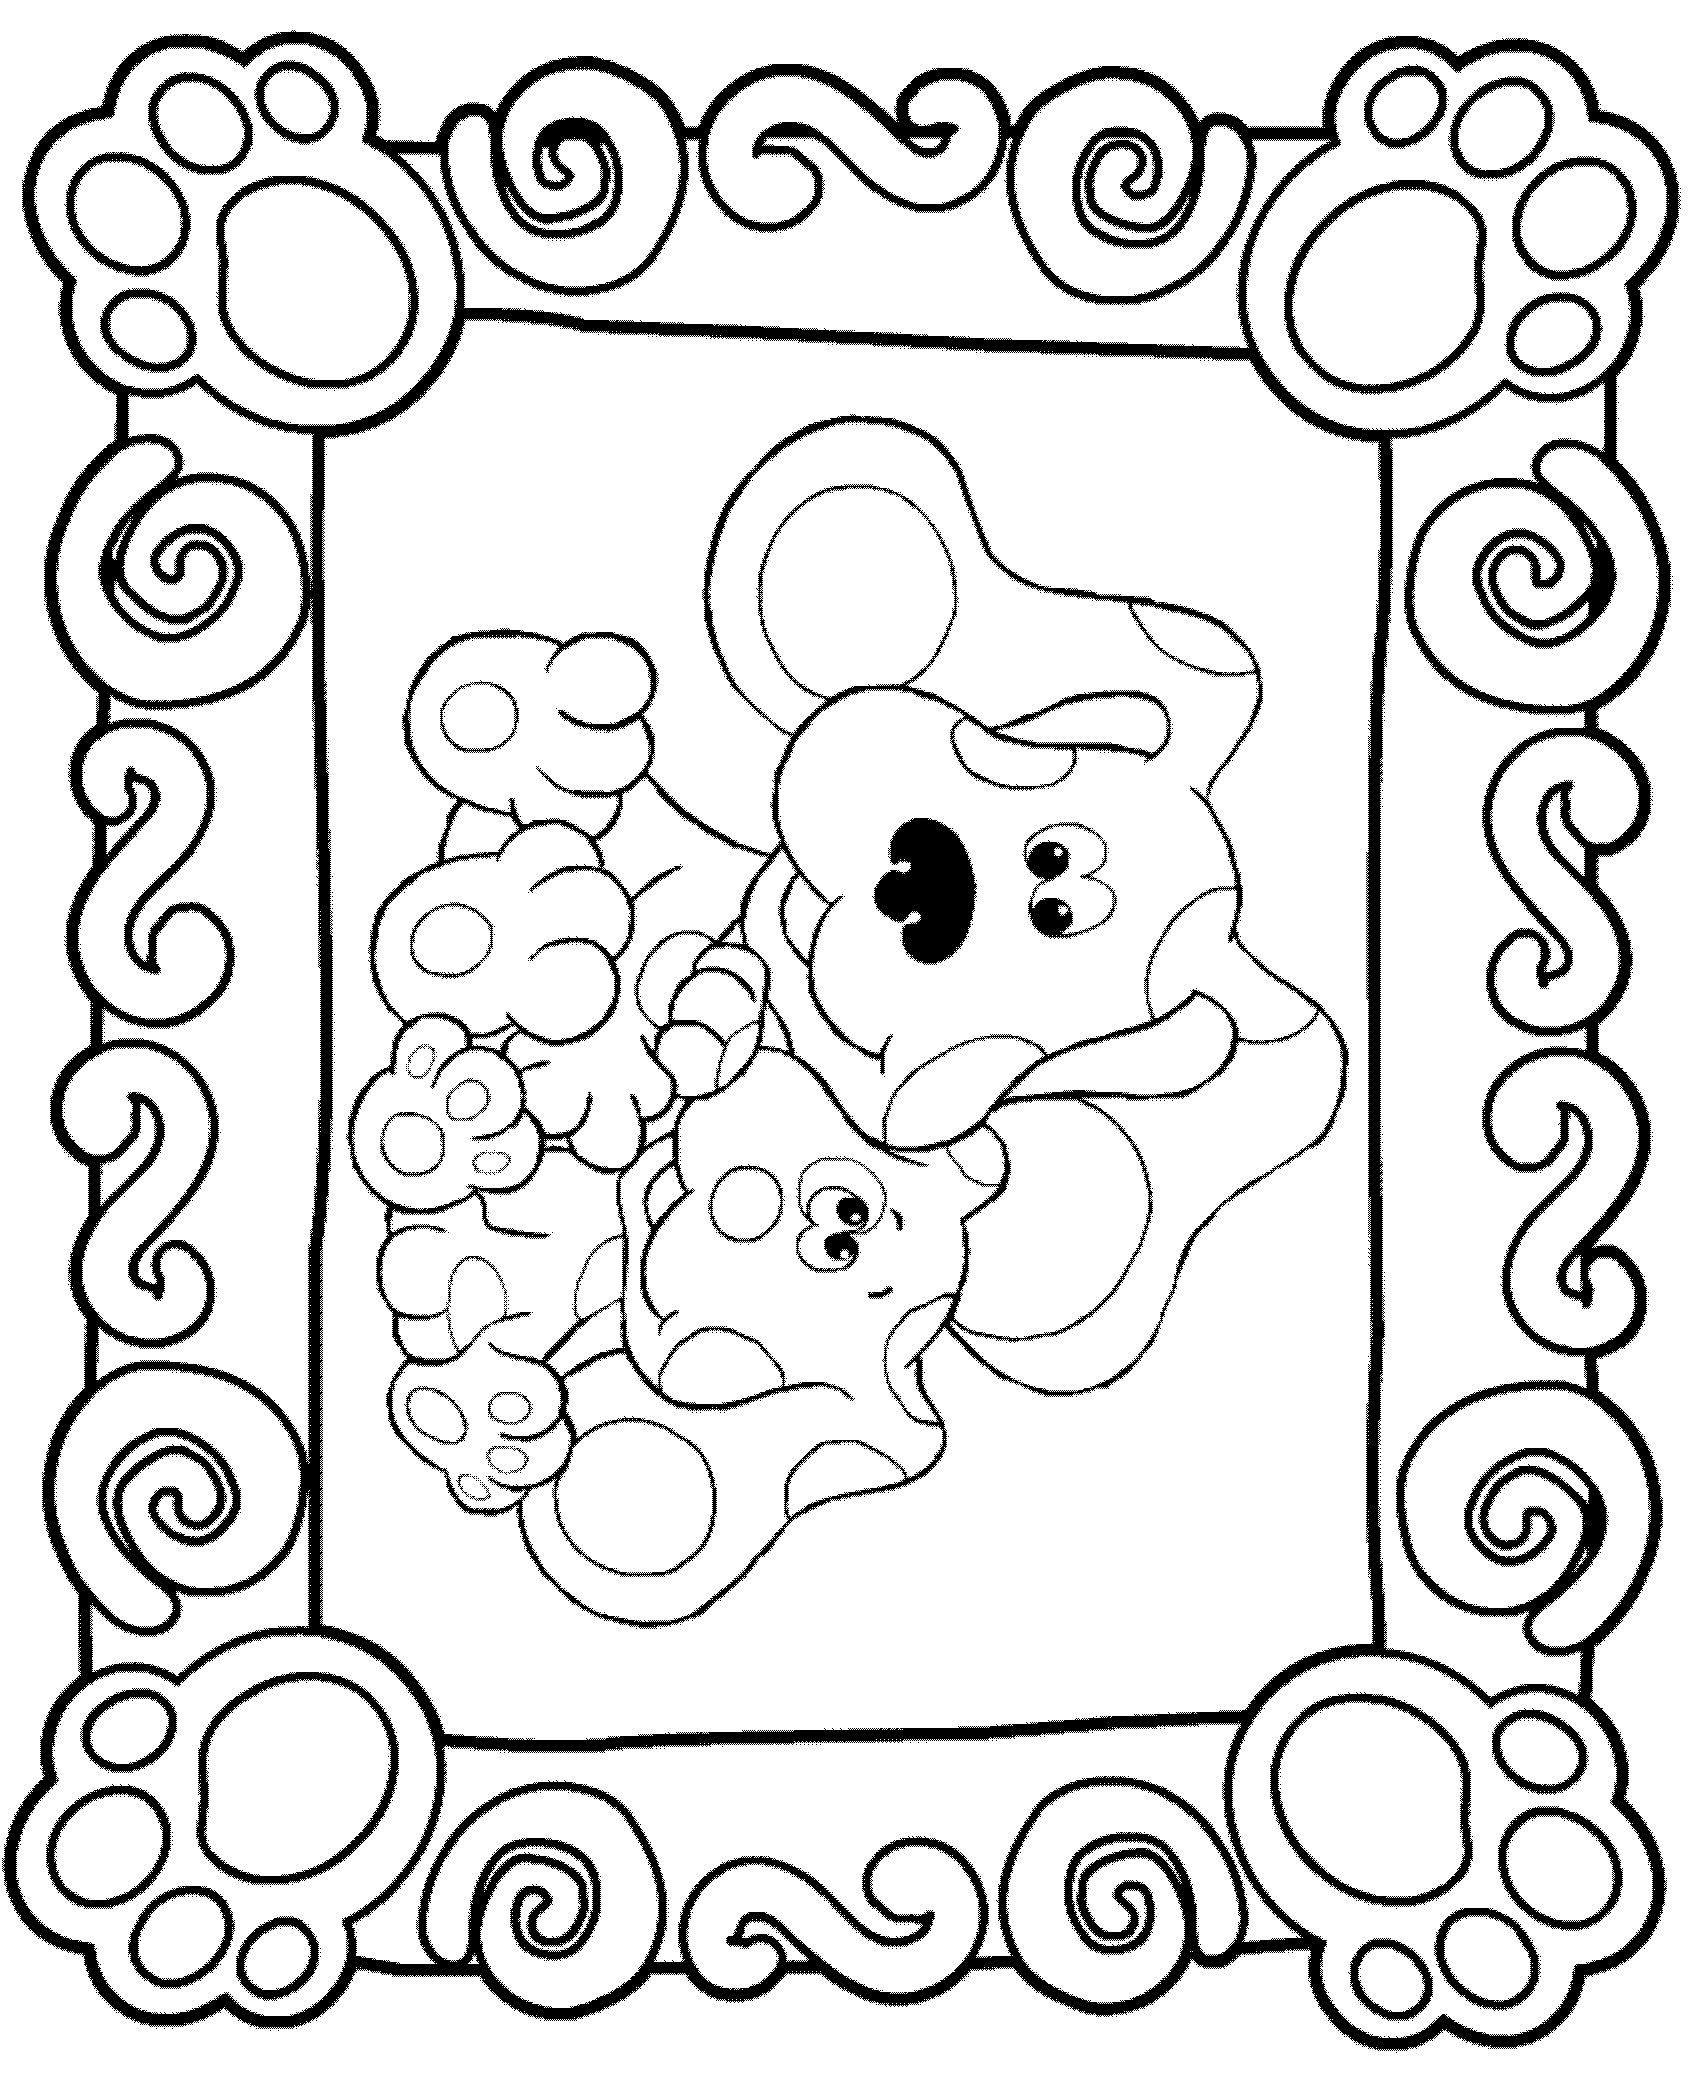 Blues Clues Coloring Pages Kidsnfun  15 Coloring Pages Of Blues Clues